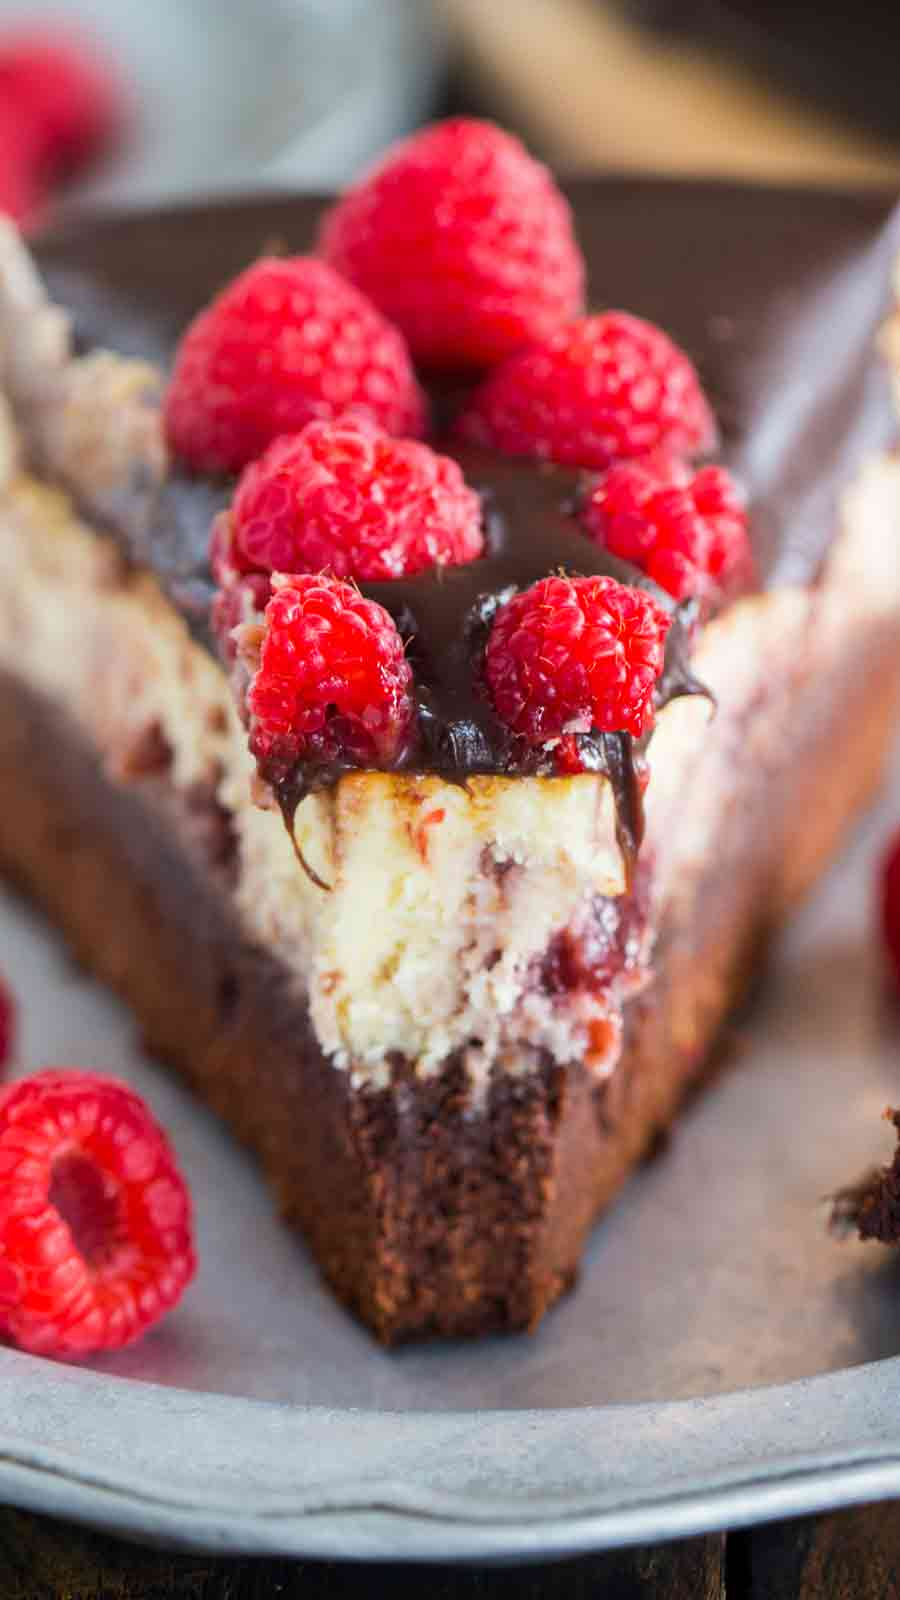 Brownie Bottom Raspberry Cheesecake is the perfect dessert when you can't decide between fruit or chocolate. A brownie bottom topped with a creamy New York style cheesecake and a hefty amount of raspberry preserves.